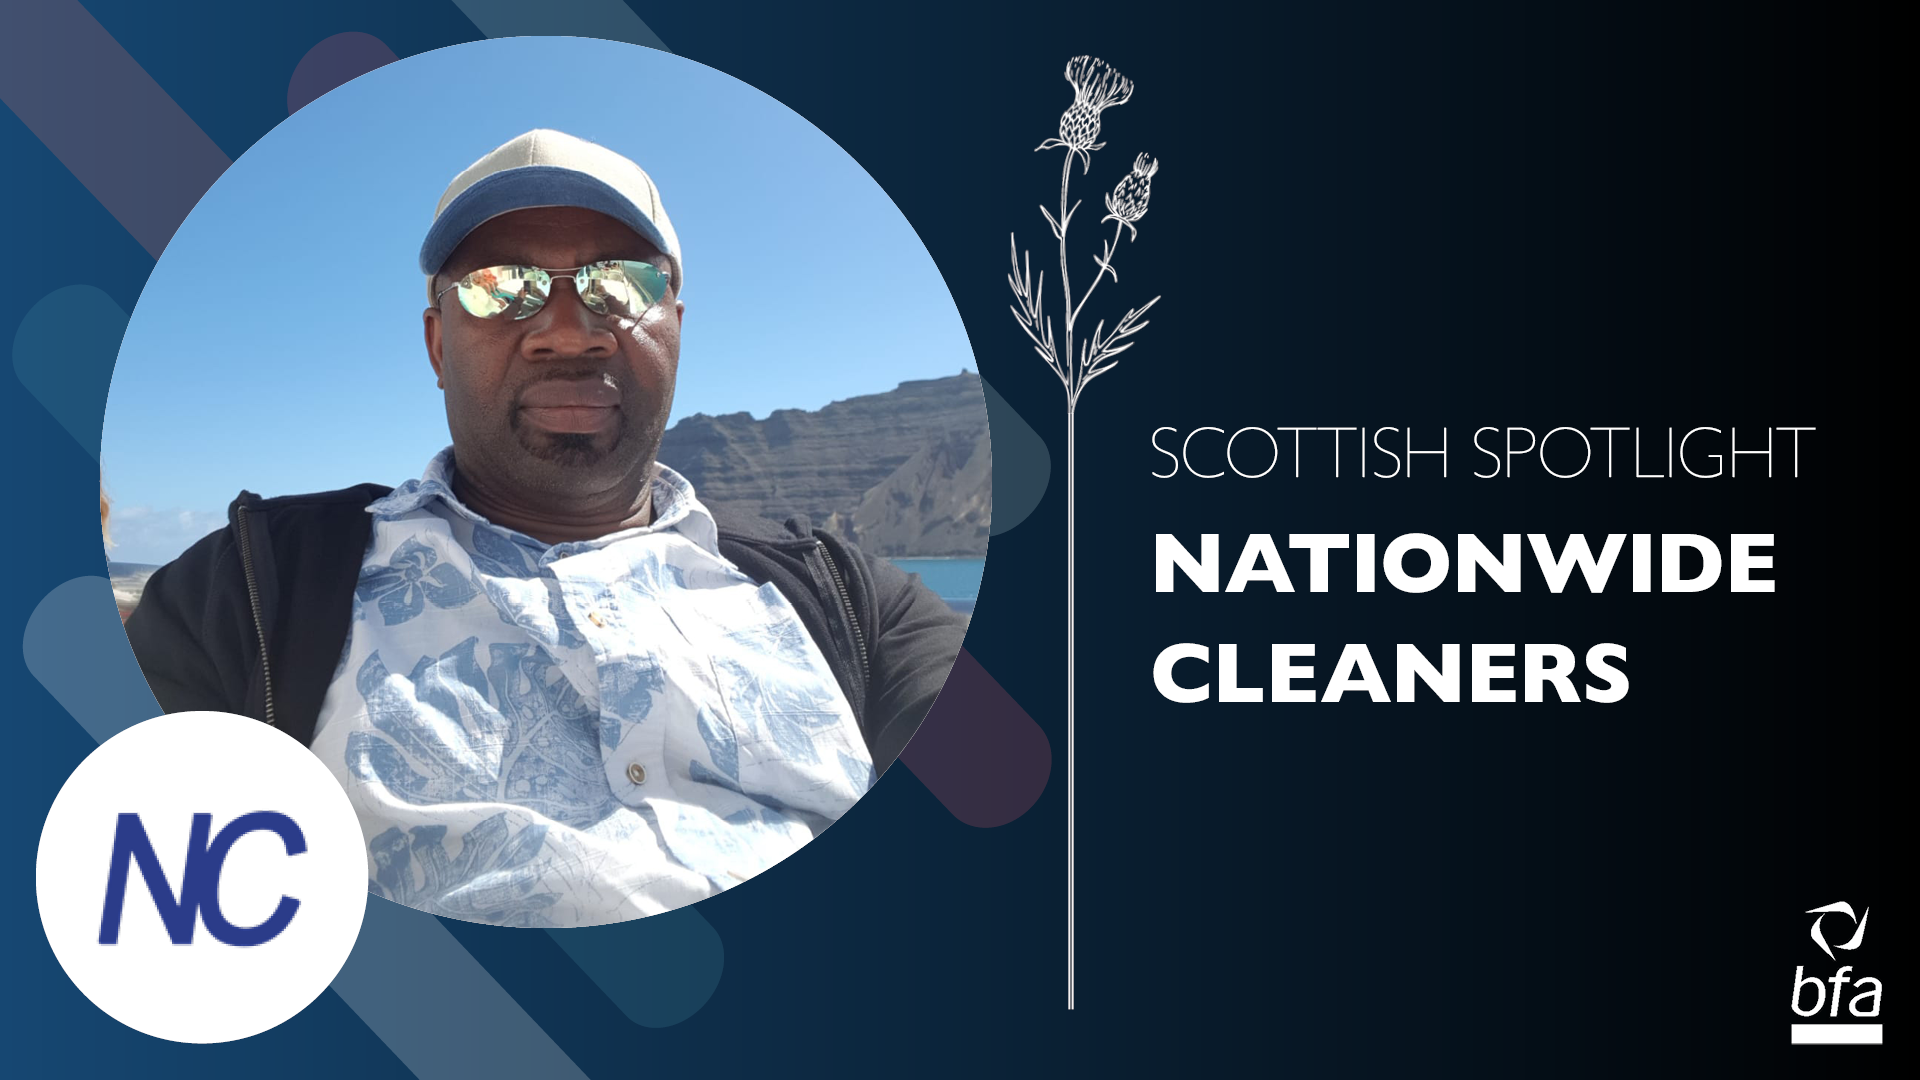 Franchisee Q&A with Nationwide Cleaners